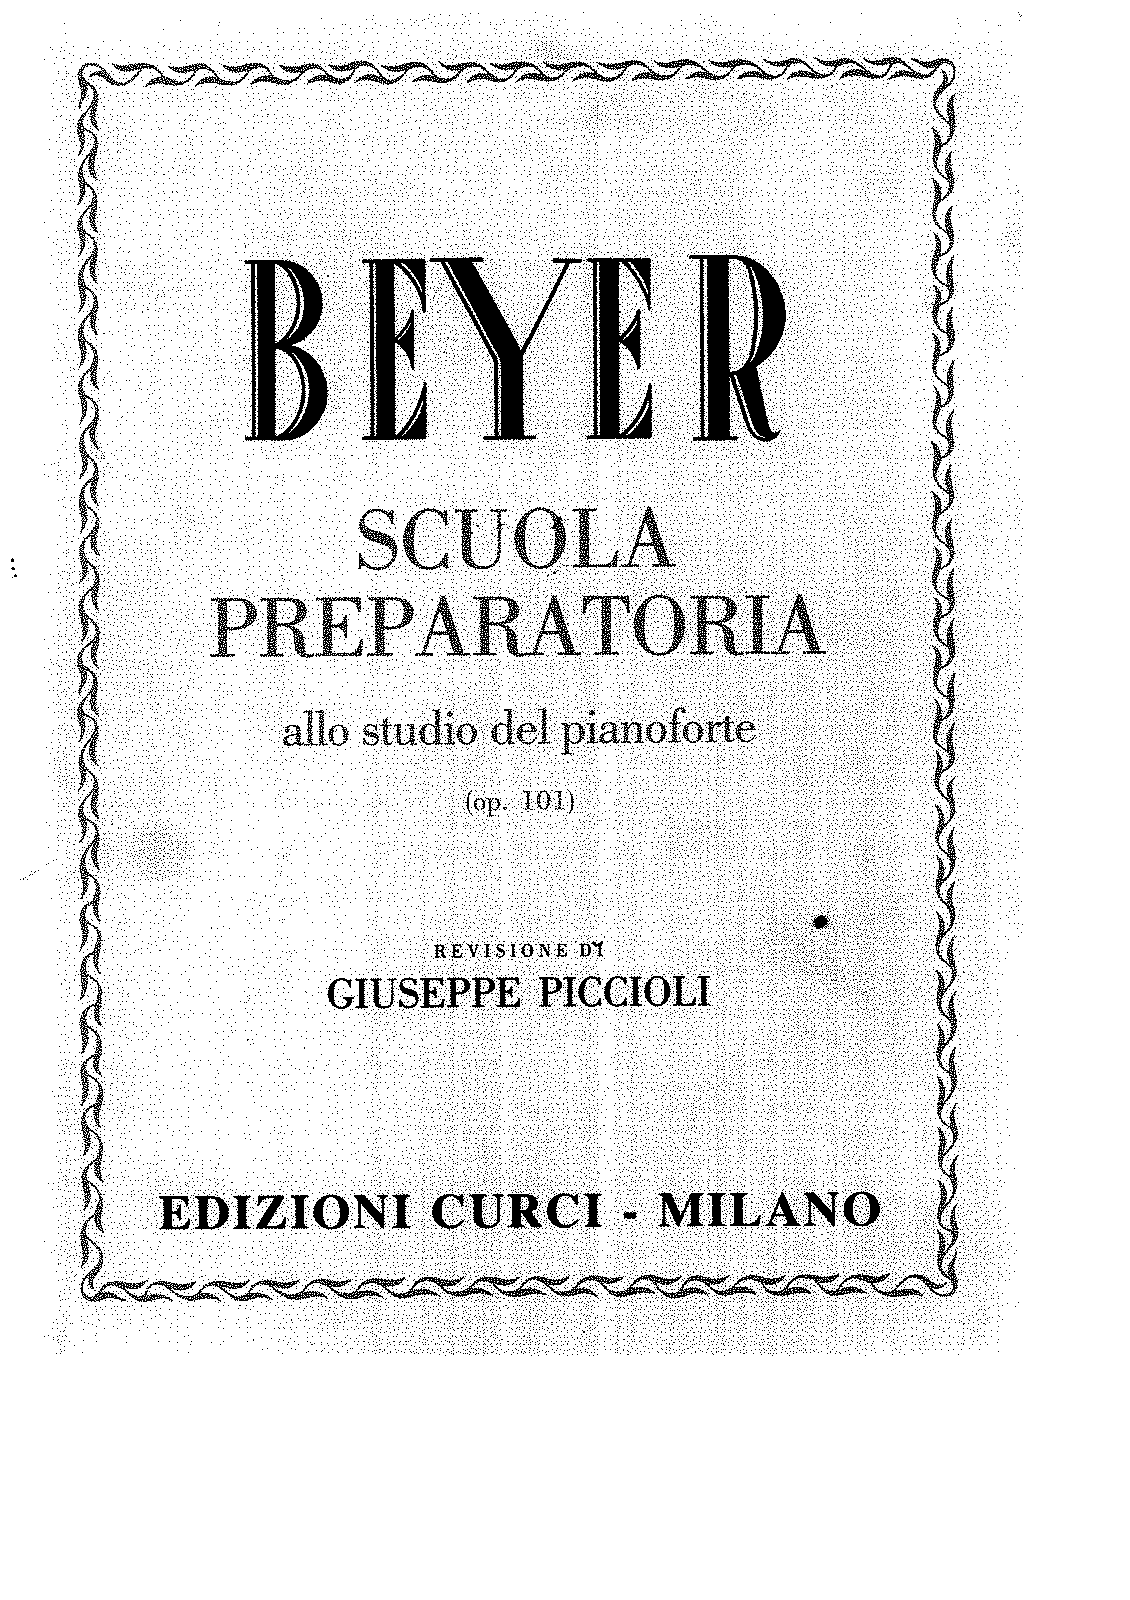 ferdinand beyer piano book pdf